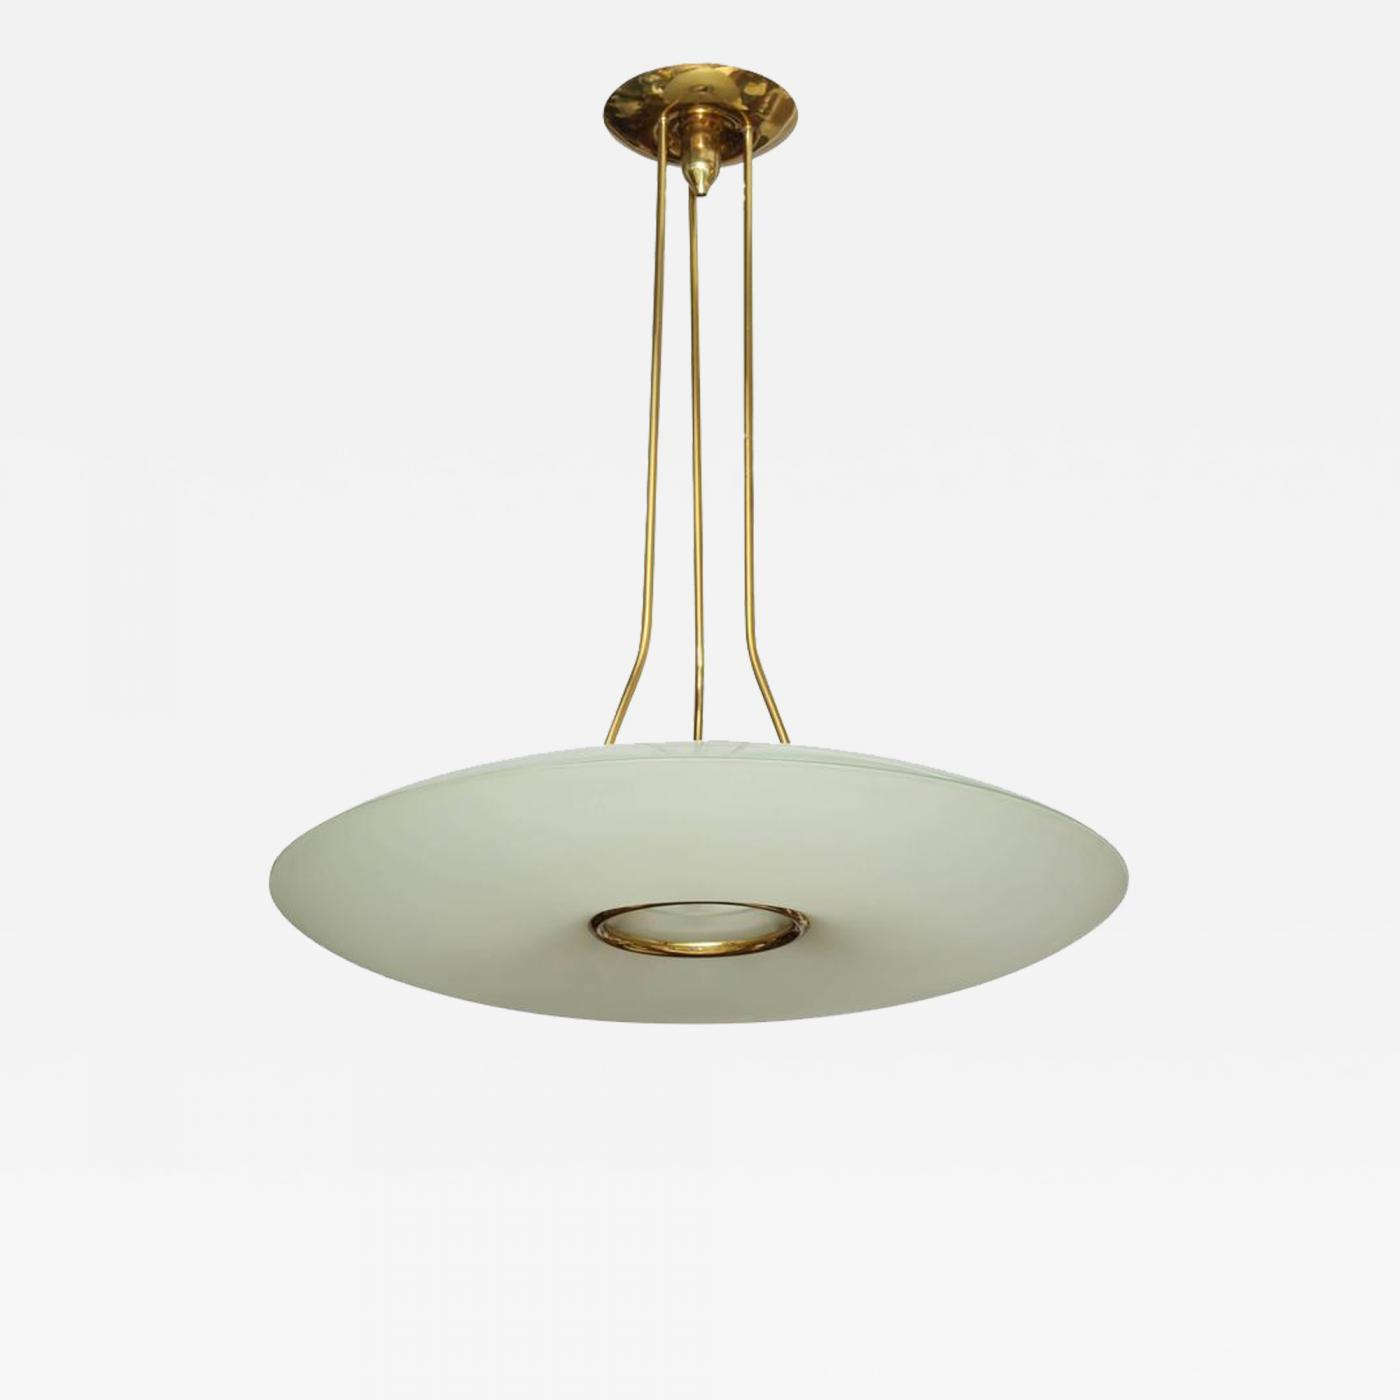 Max ingrand fontana arte chandelier made in italy 1955 listings furniture lighting chandeliers and pendants max ingrand fontana arte aloadofball Images